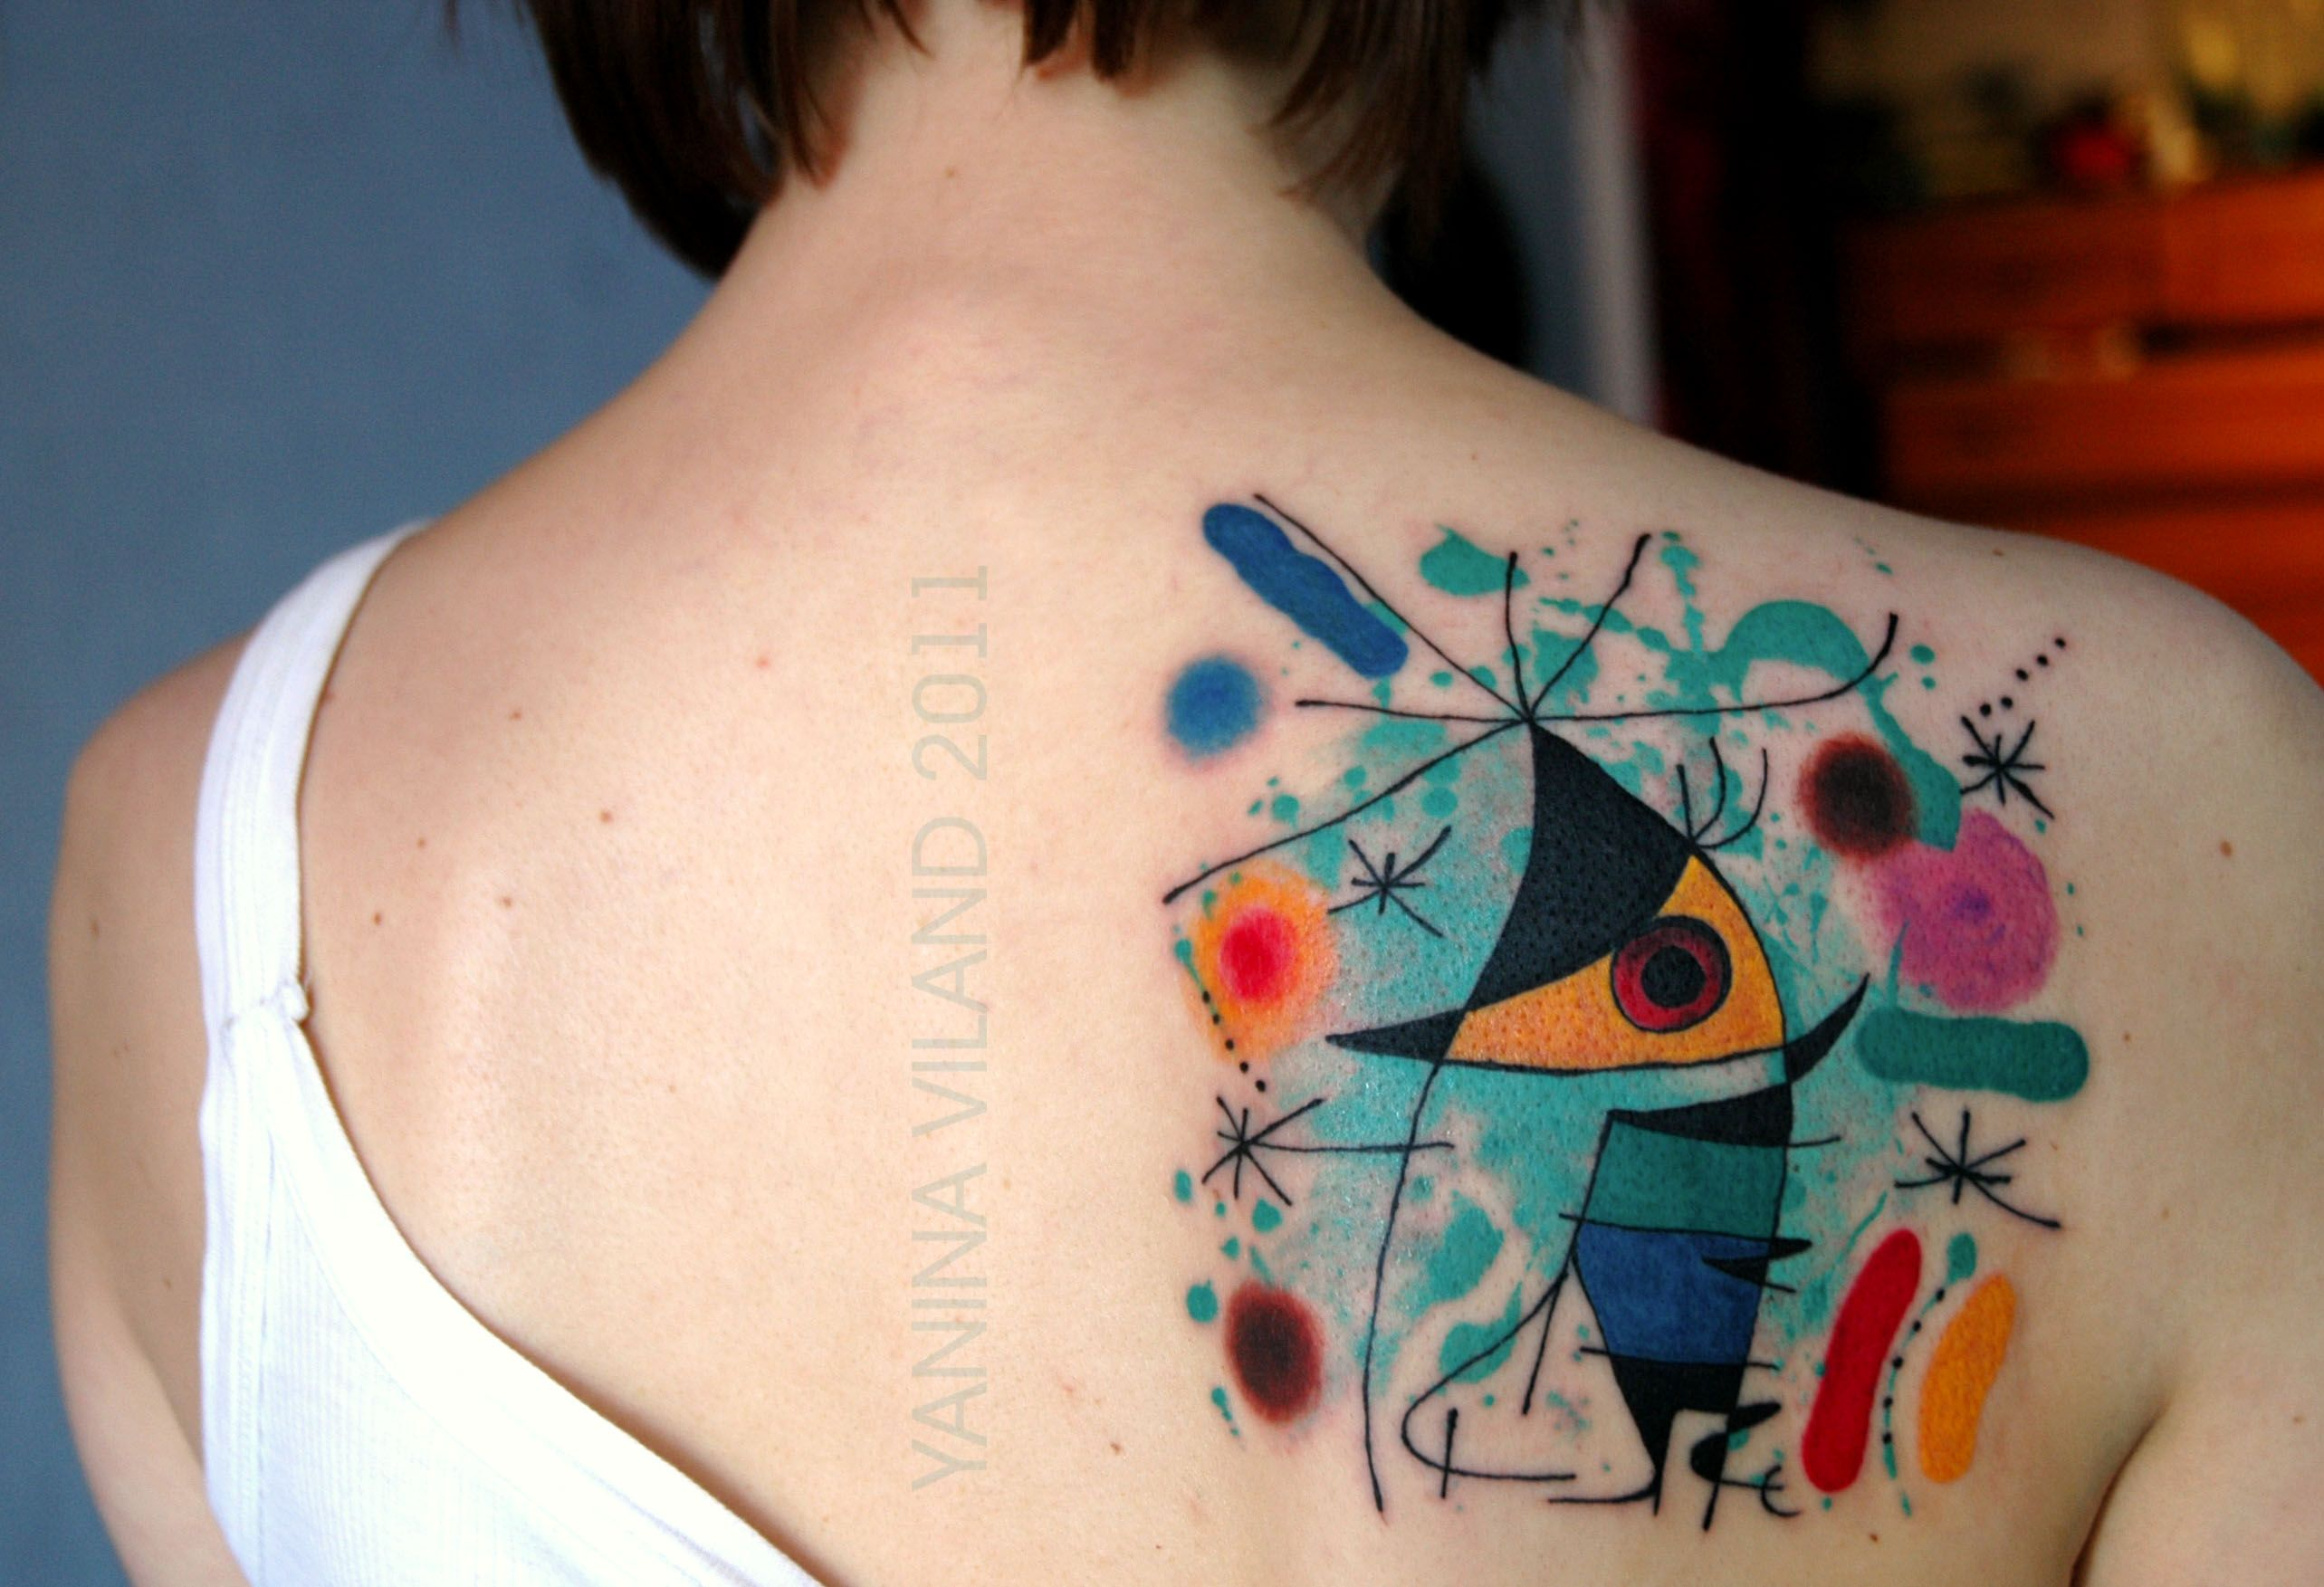 Stunning Classical Fine Art Tattoo Designs With Images